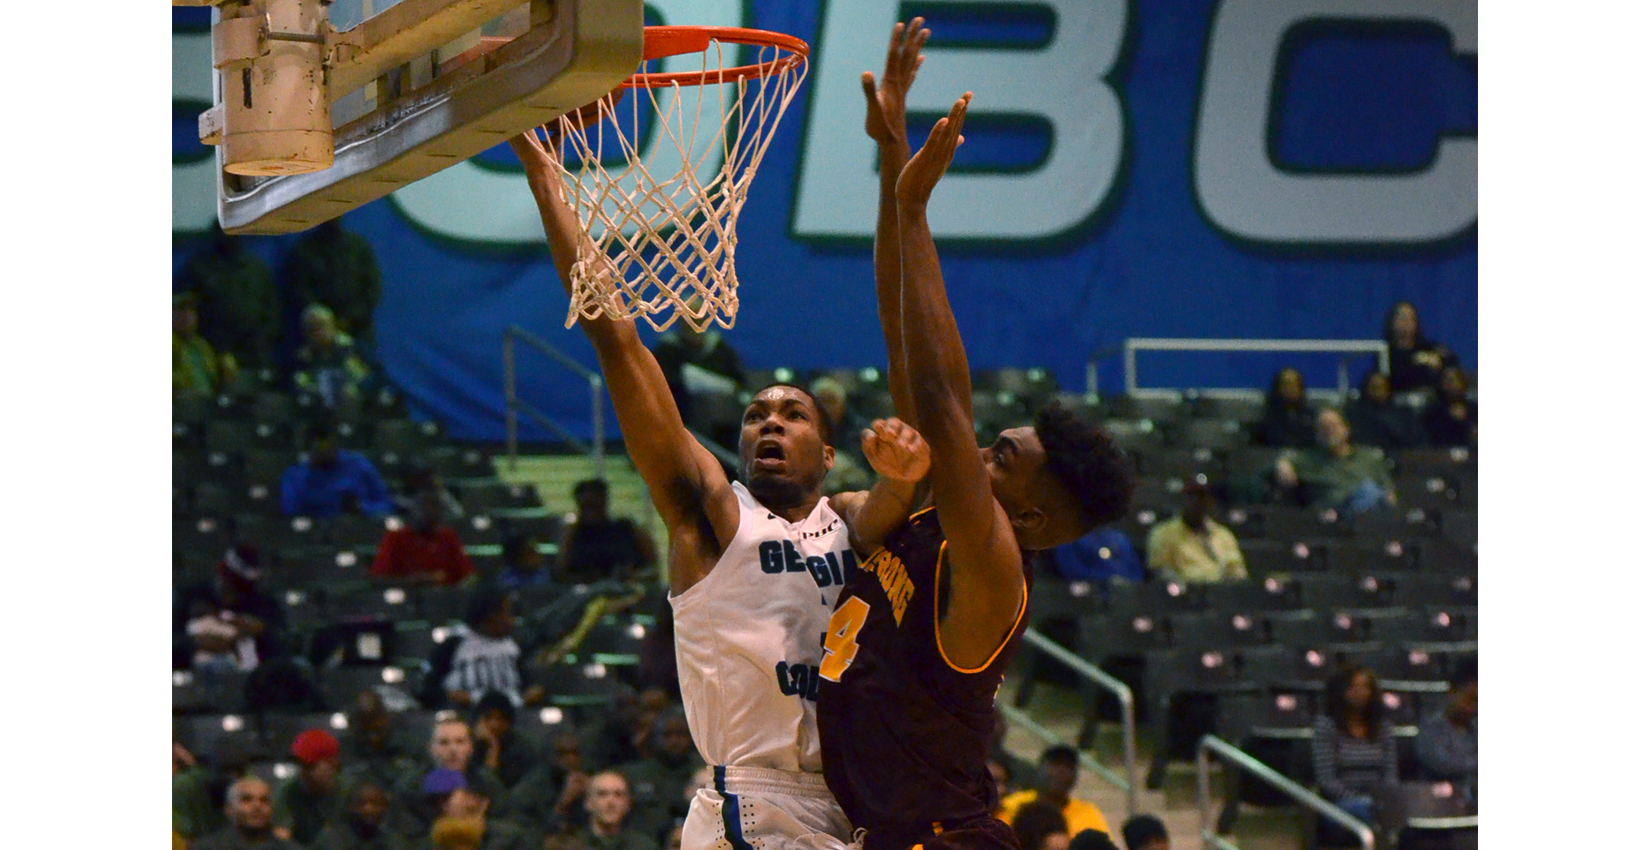 Bobcat Men's Hoops Drops Conference Opener to Armstrong State, 69-64